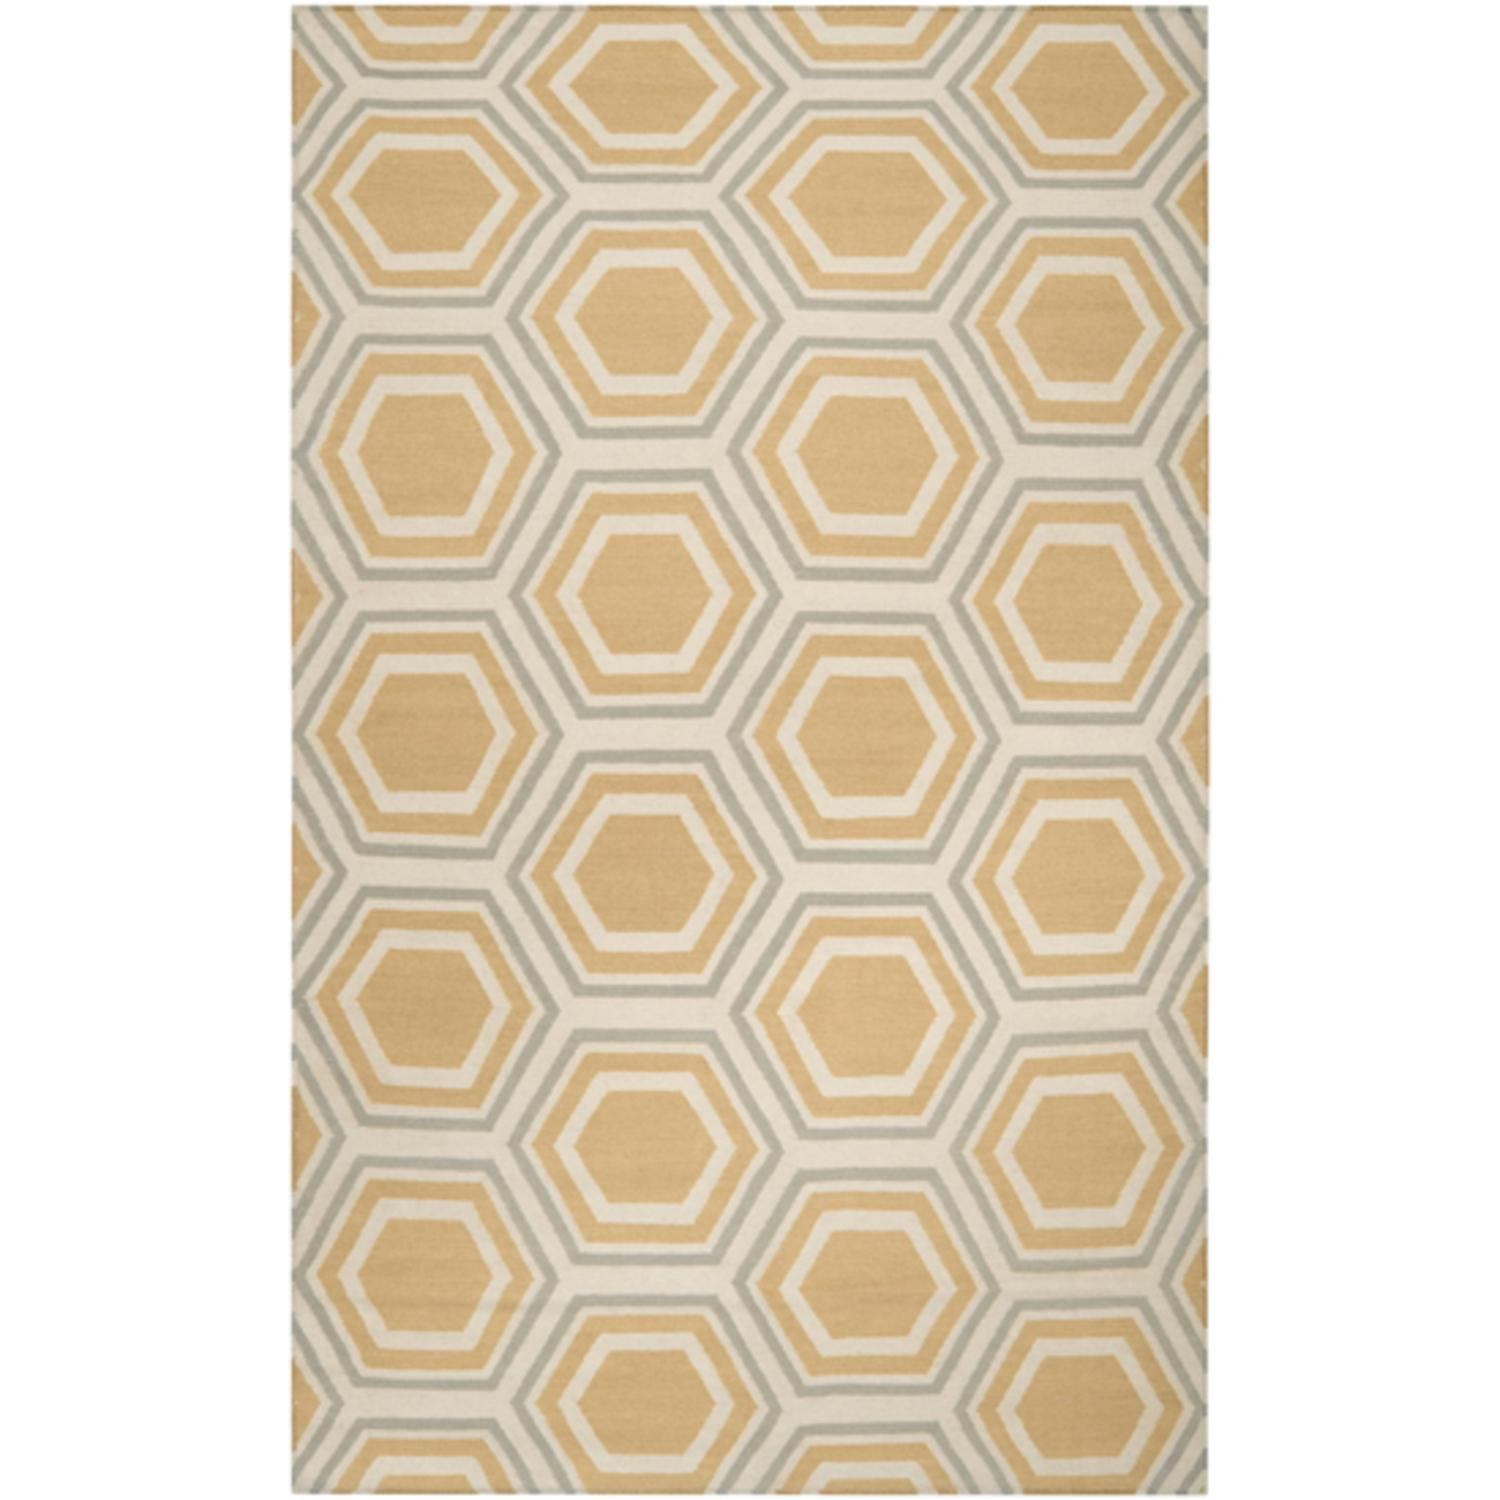 2.5' x 8' Retro Octagon Goldenrod and Silver Wool Area Throw Rug